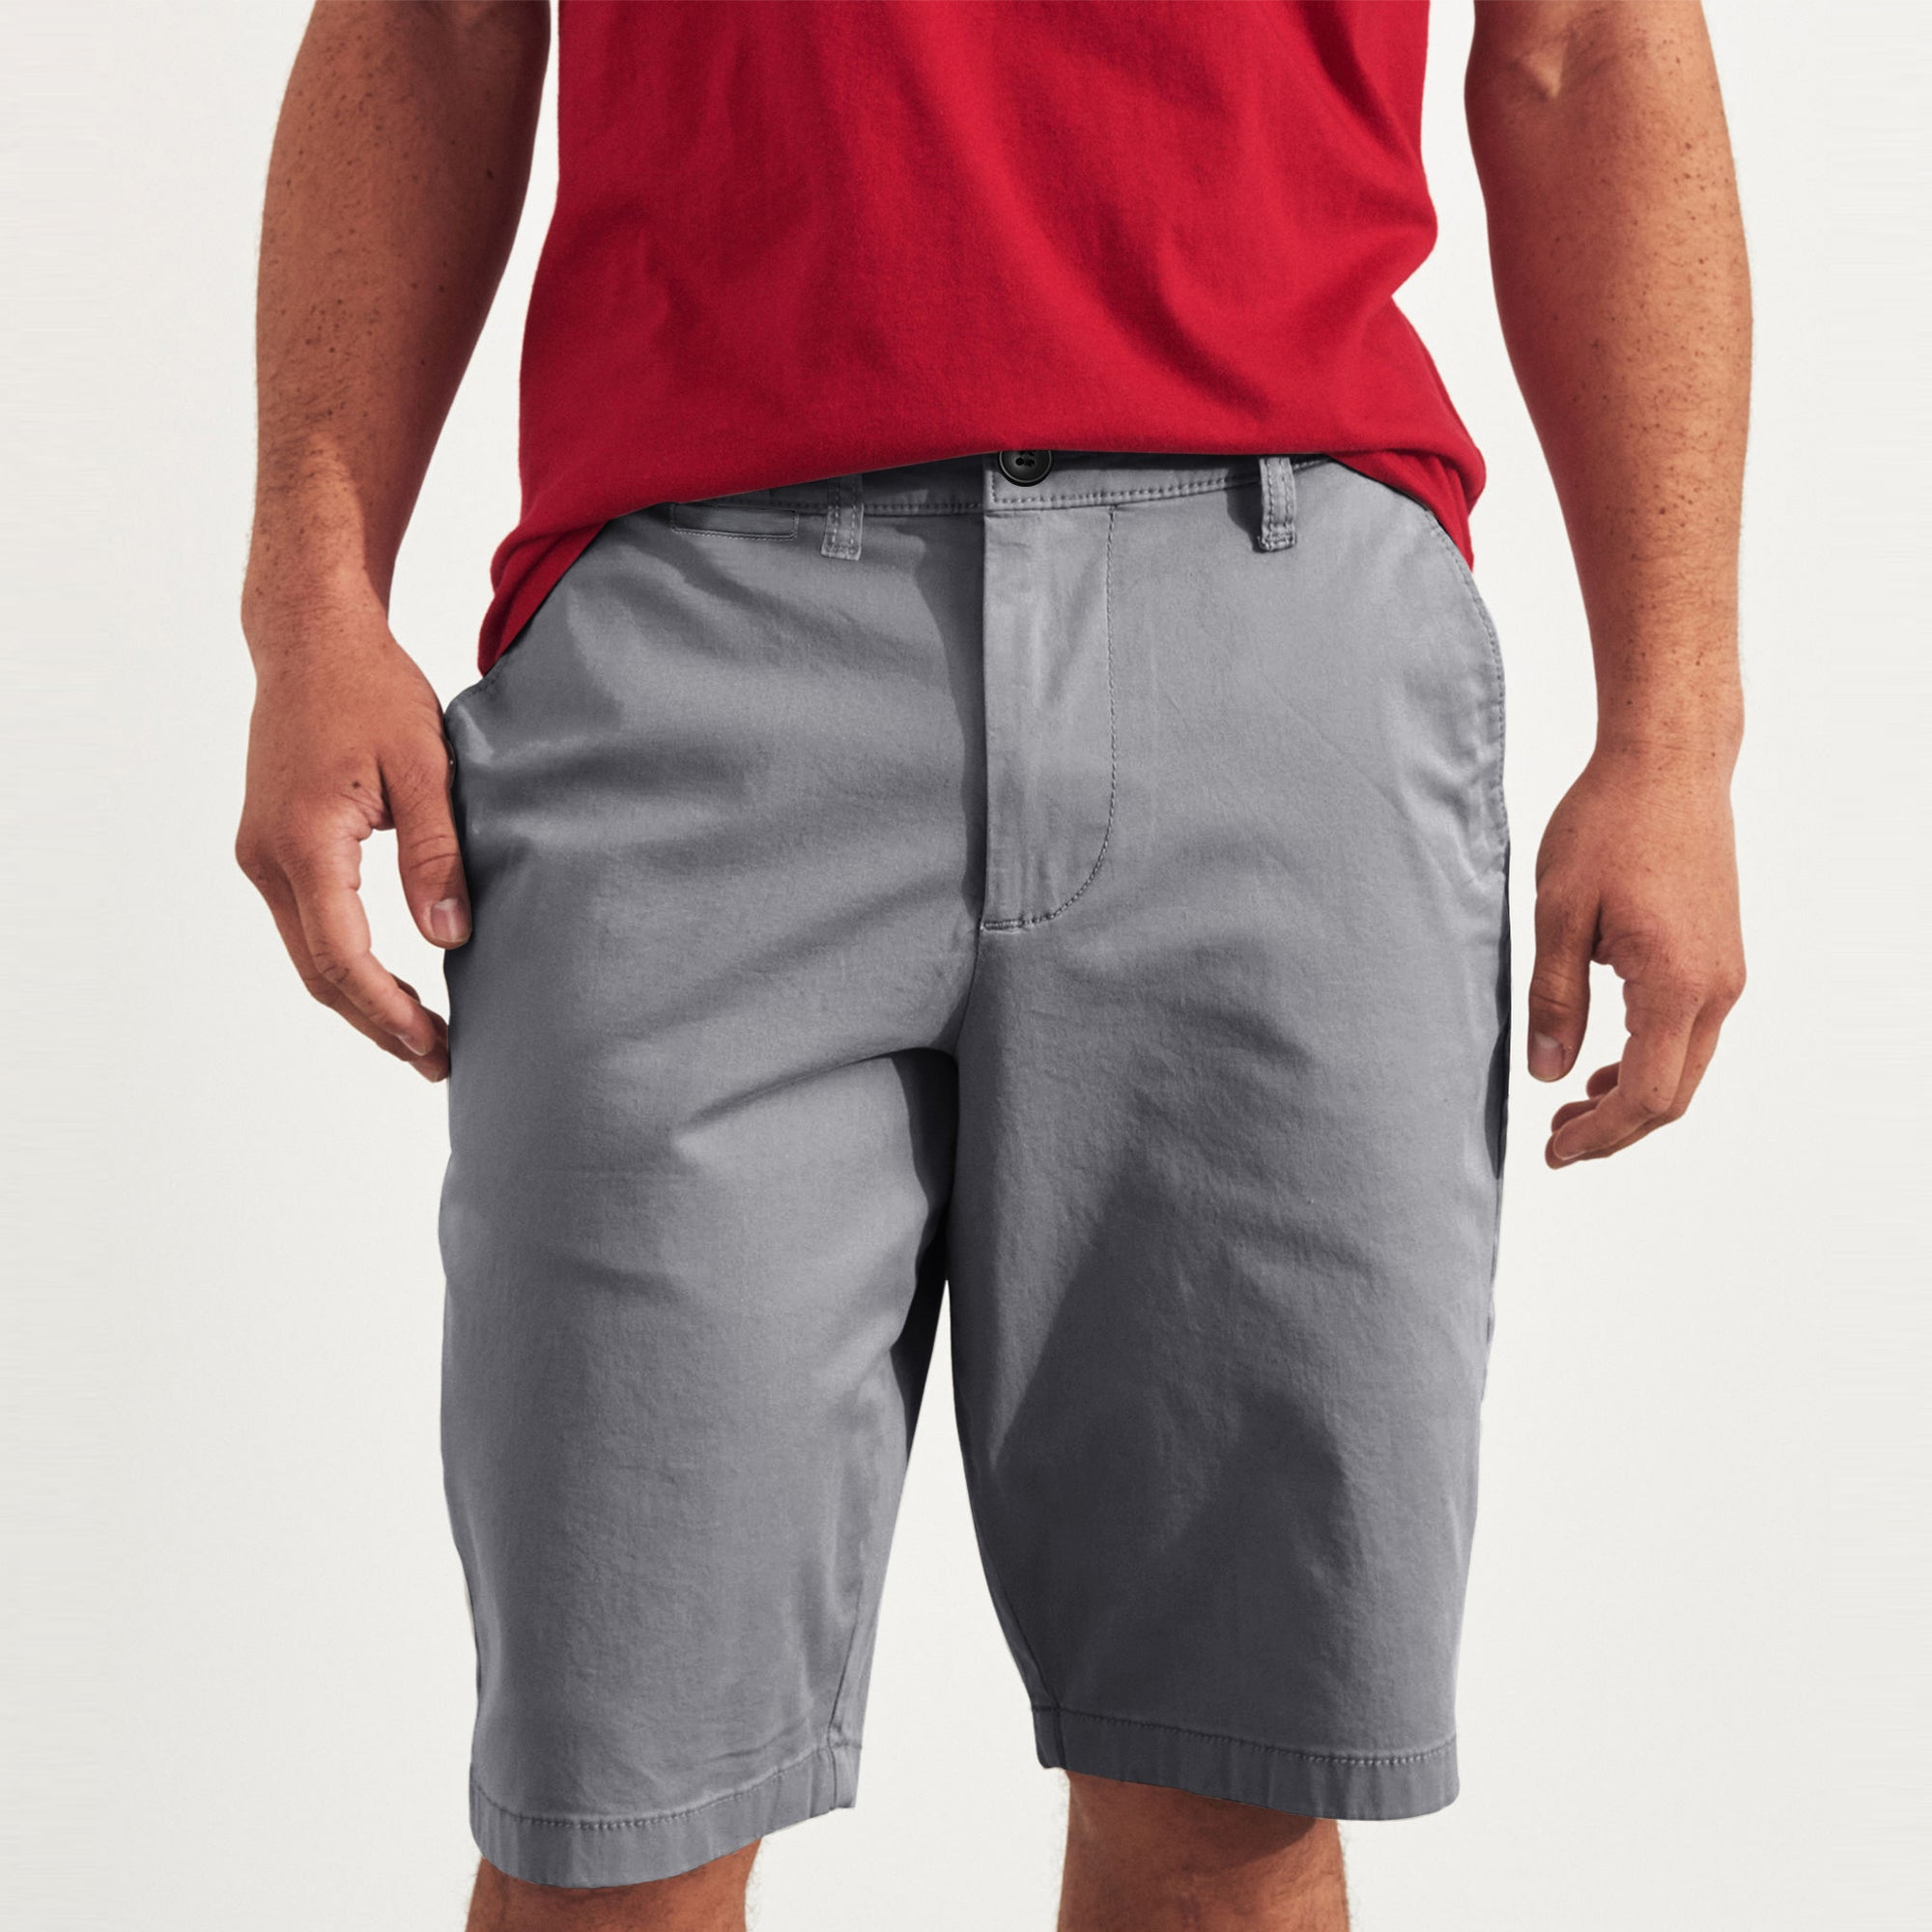 Next Chino Short For Men- Slate Grey-SP049